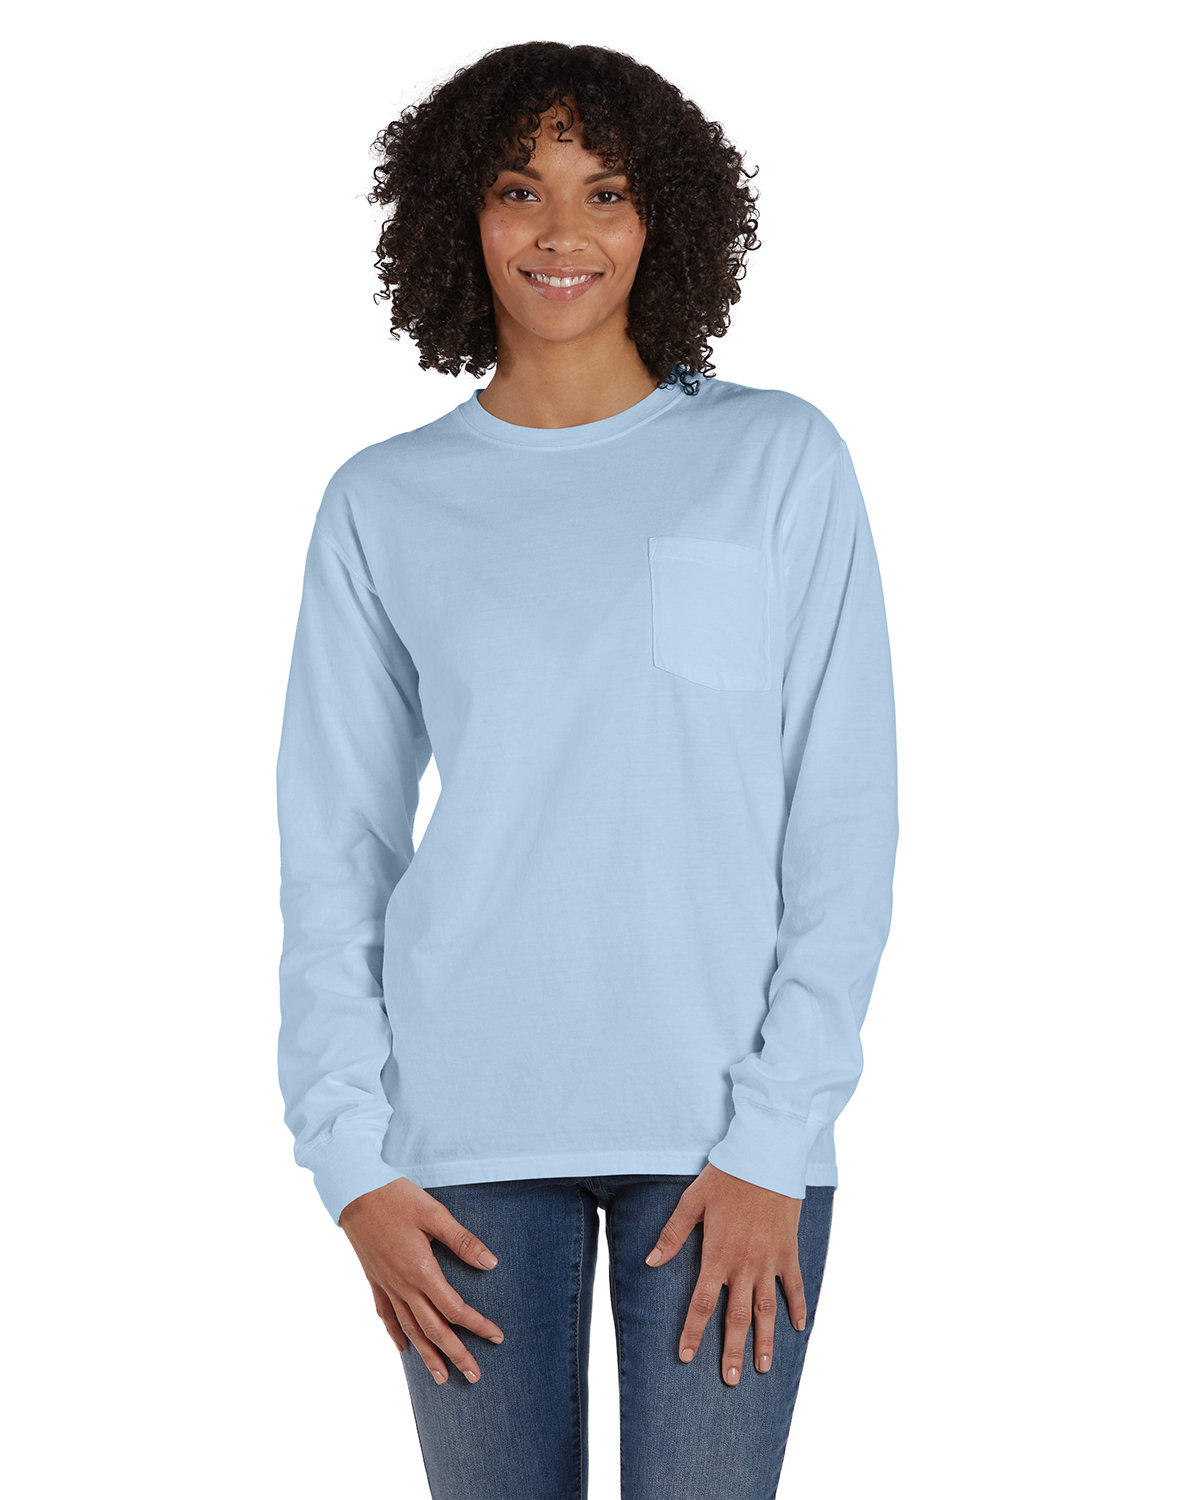 ComfortWash by Hanes Unisex Garment-Dyed Long-Sleeve T-Shirt with Pocket SOOTHING BLUE